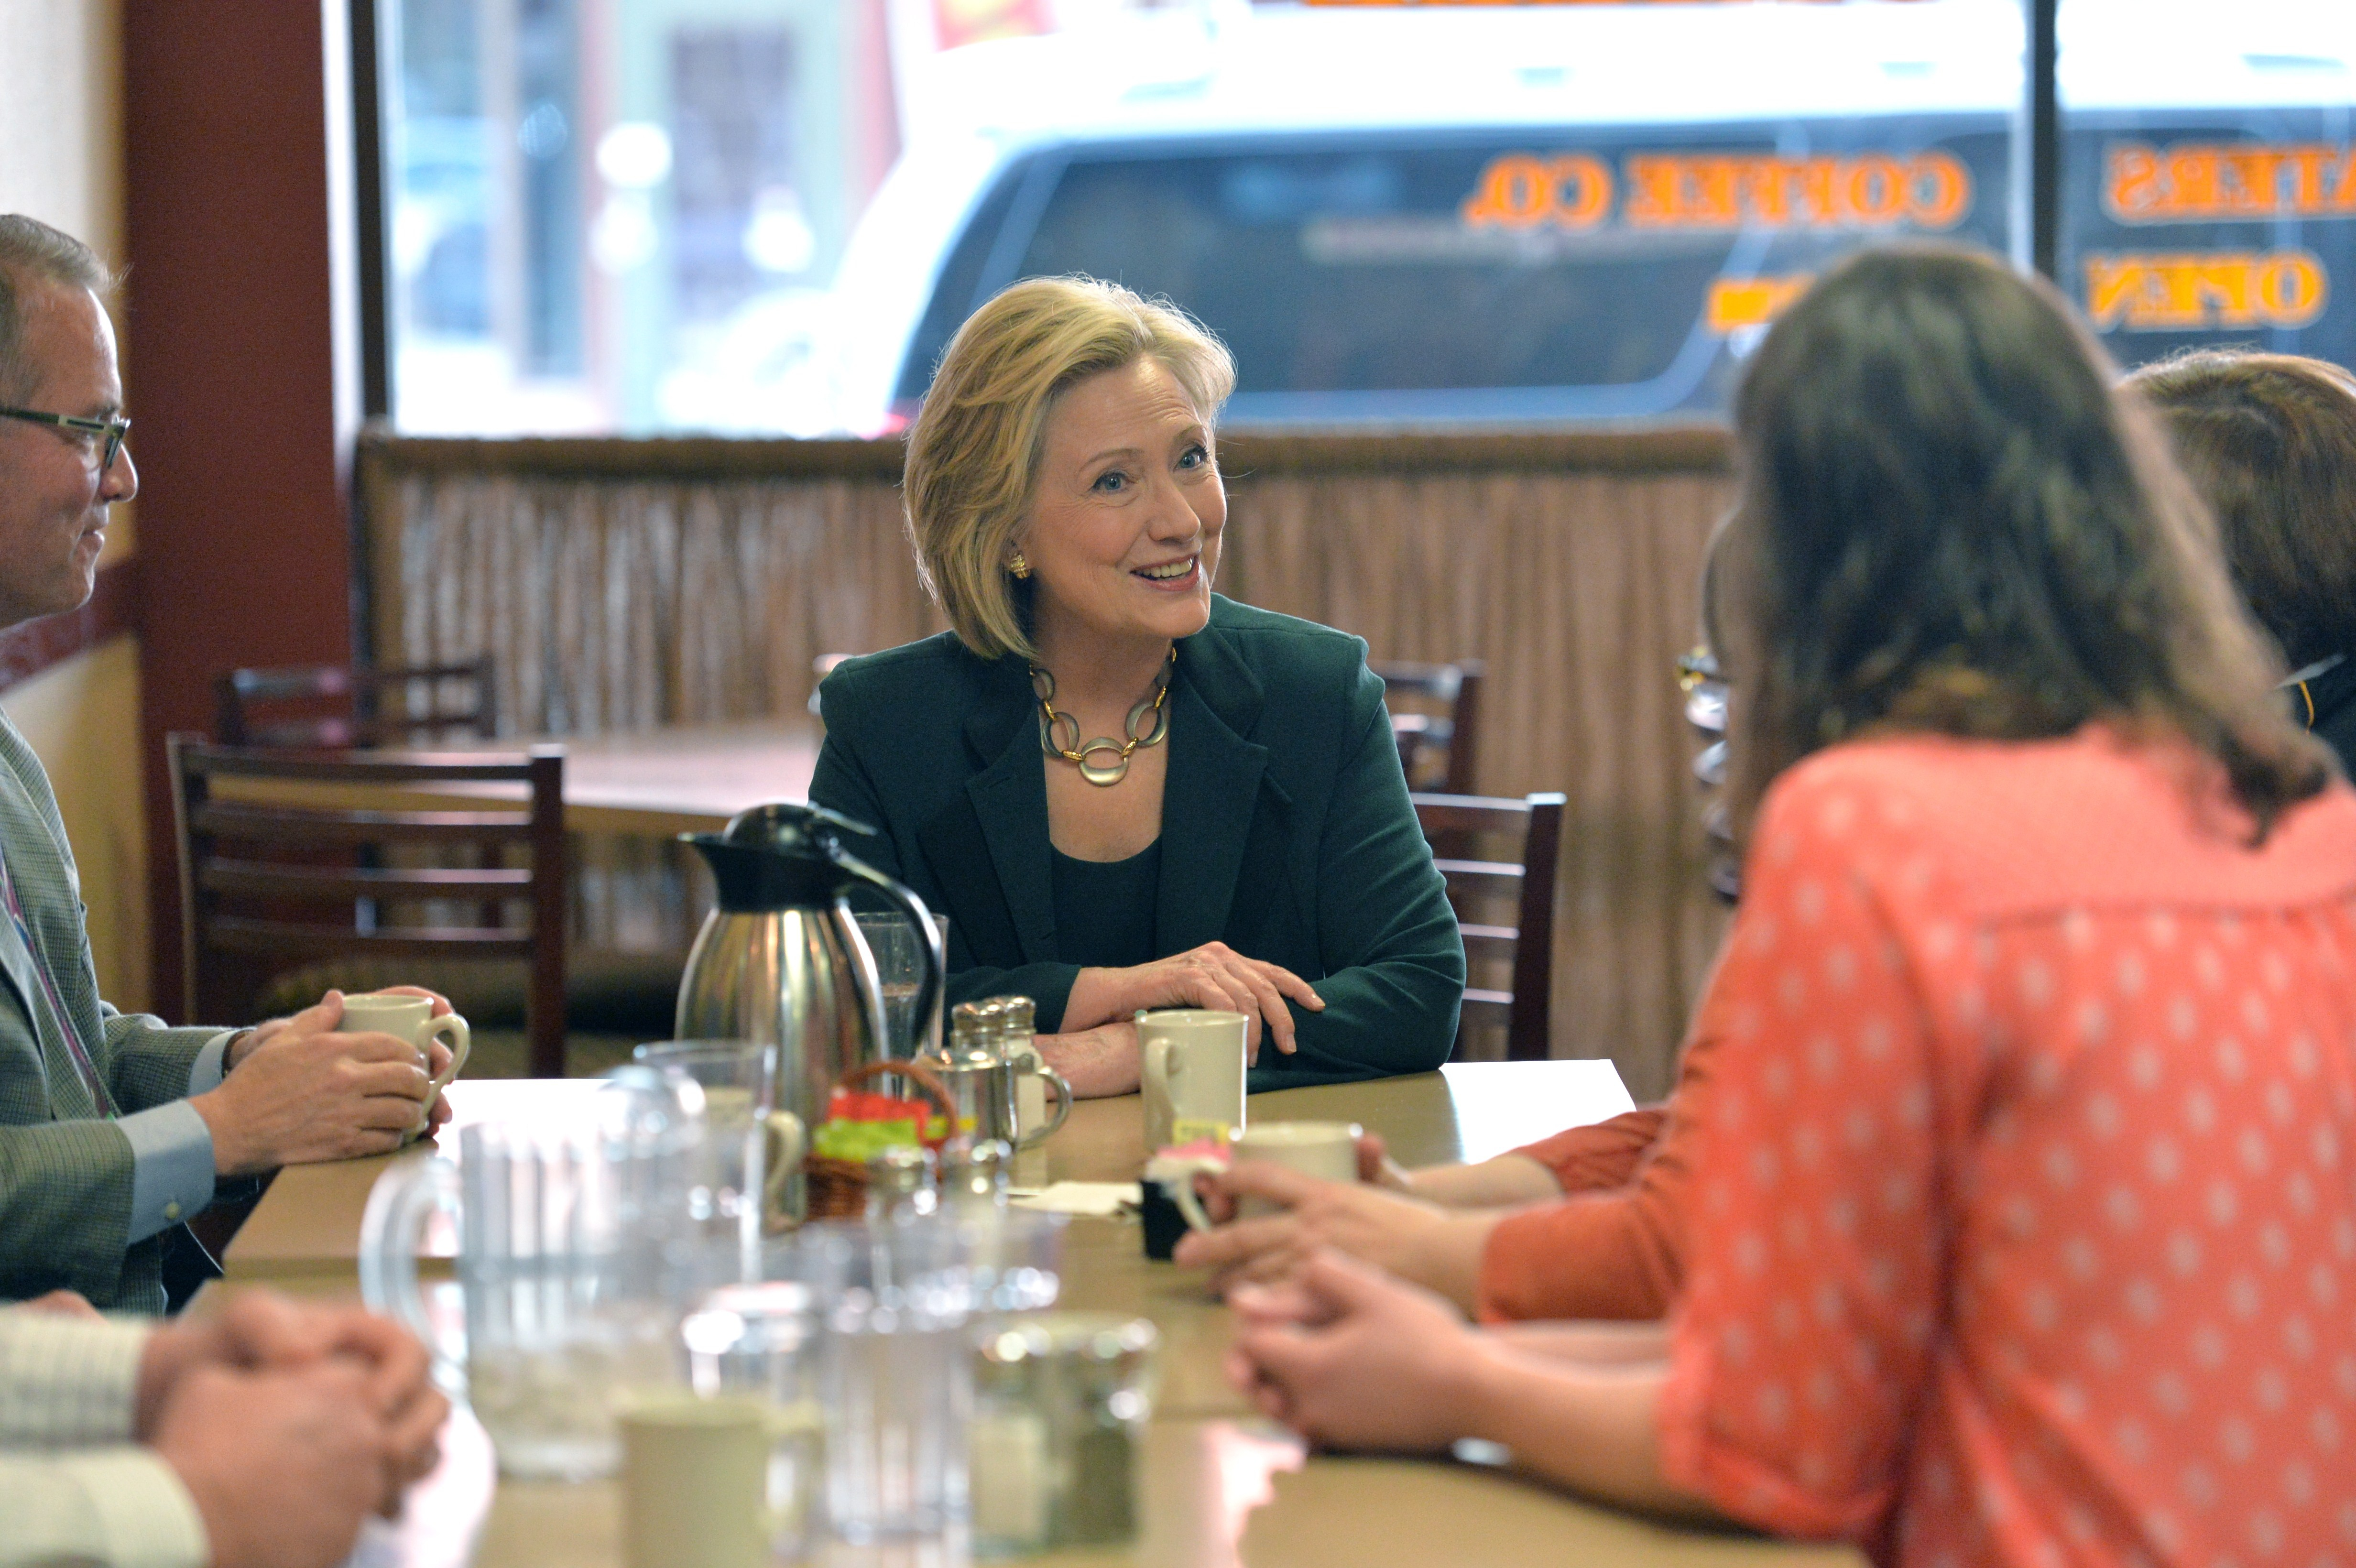 """Marshalltown, IA - April 15: Clinton had coffee and spoke with customers during her first Iowa visit. Many of her advisors think she performs best in small groups with voters, so her campaign began with a carefully planned """"listening tour."""""""